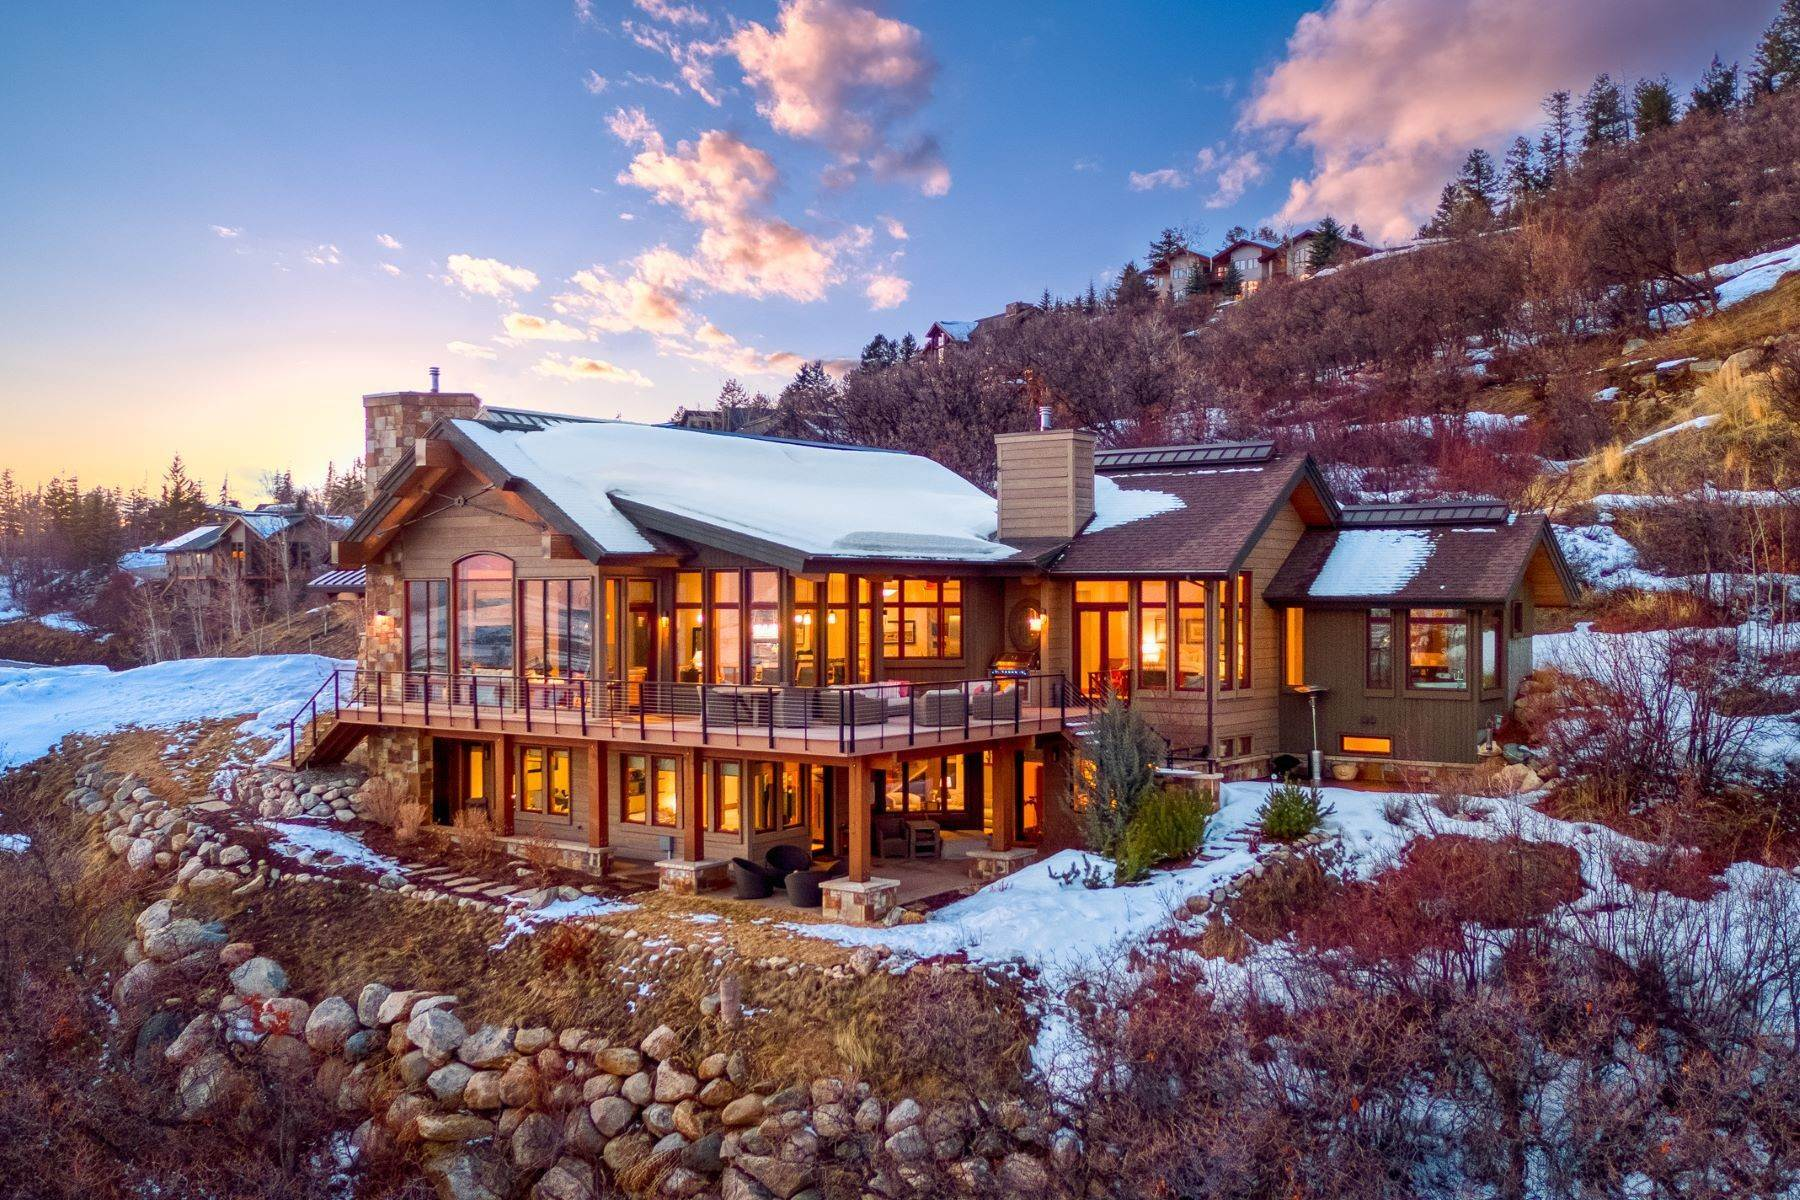 Single Family Homes for Active at Vista Ridge Luxury 2539 Mountain View Lane Steamboat Springs, Colorado 80487 United States